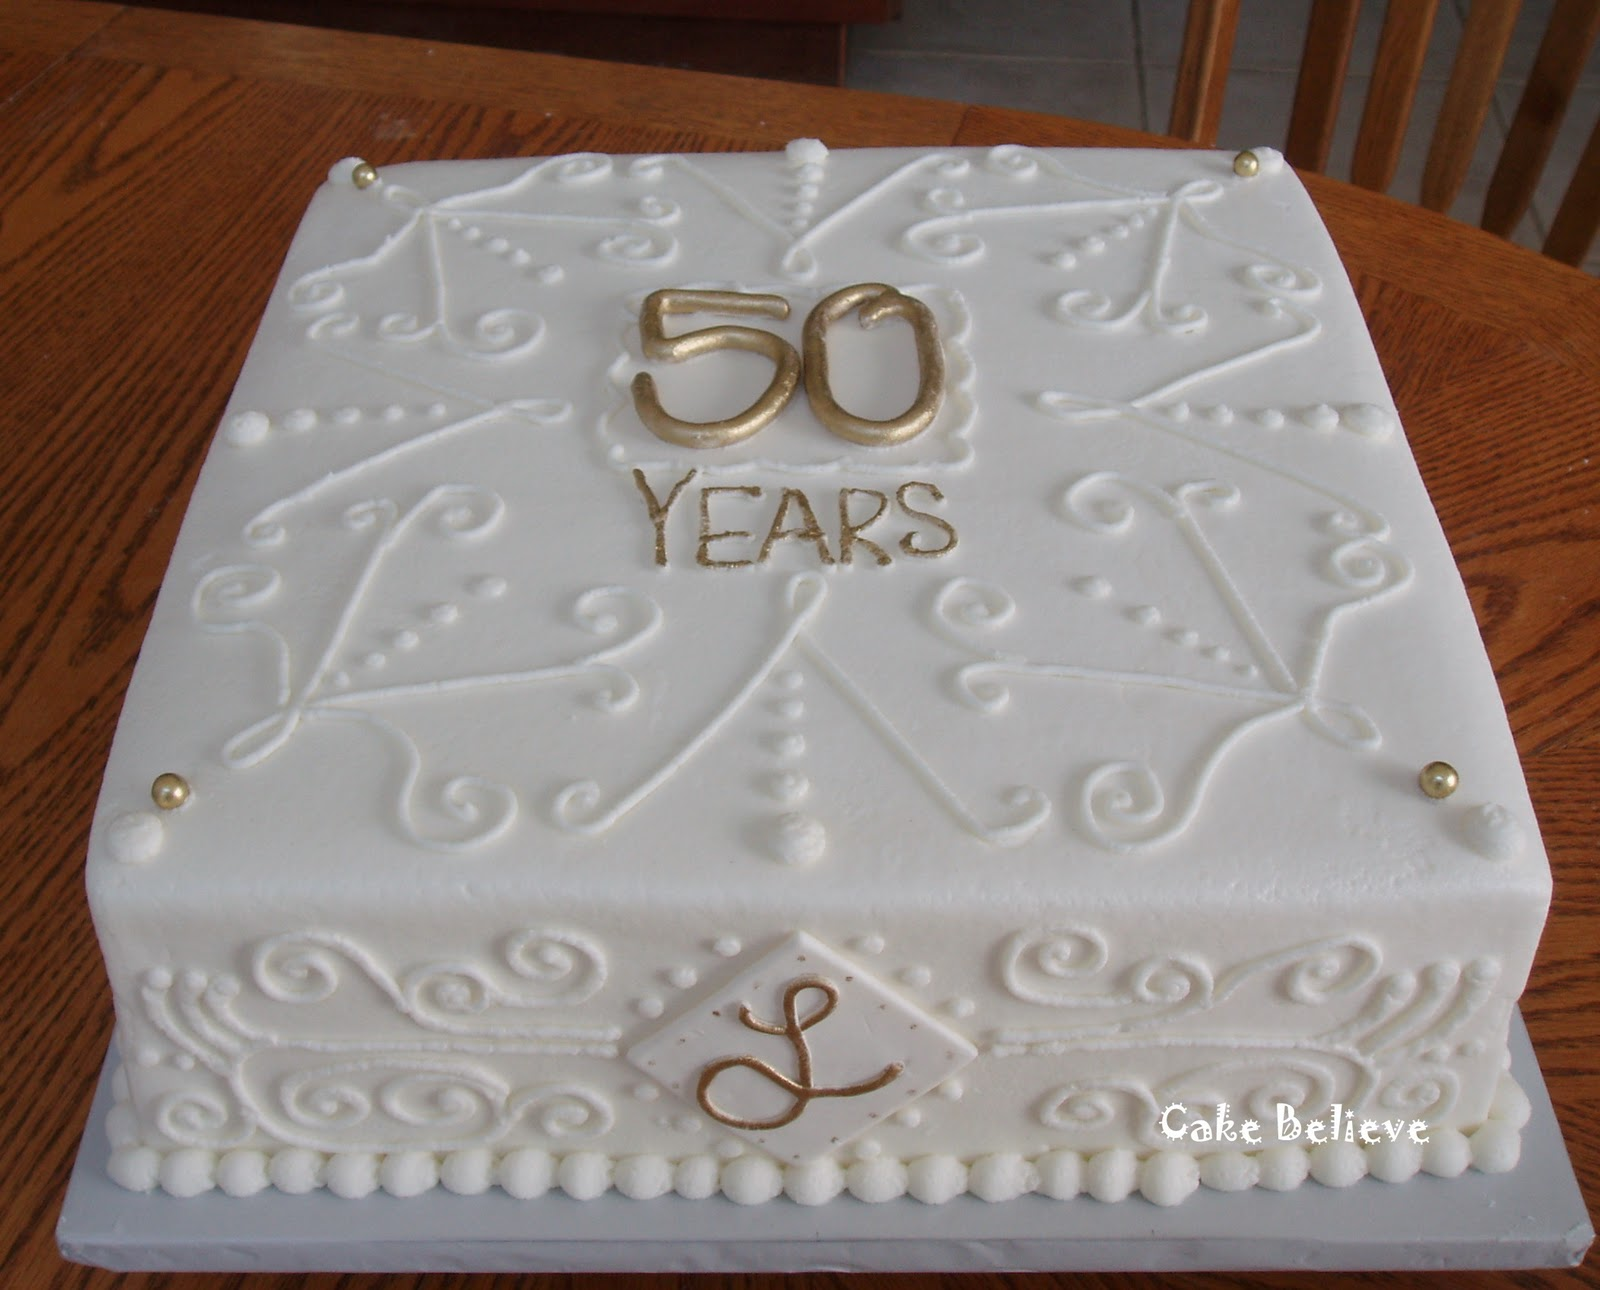 Cake Believe 50th Wedding Anniversary